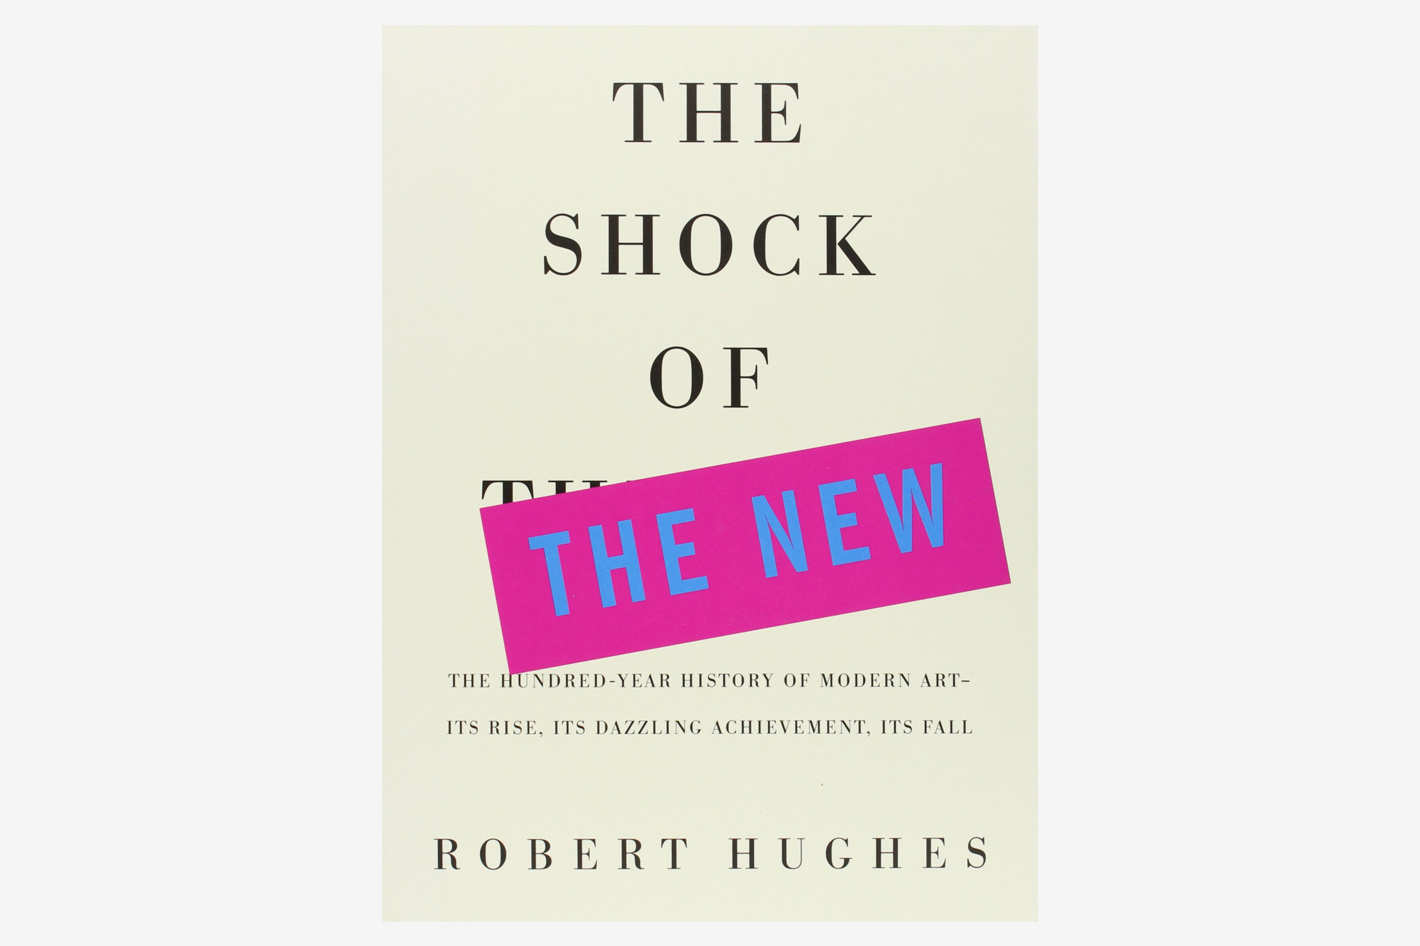 <em>The Shock of the New: The Hundred-Year History of Modern Art — Its Rise, Its Dazzling Achievement, Its Fall</em>, by Robert Hughes